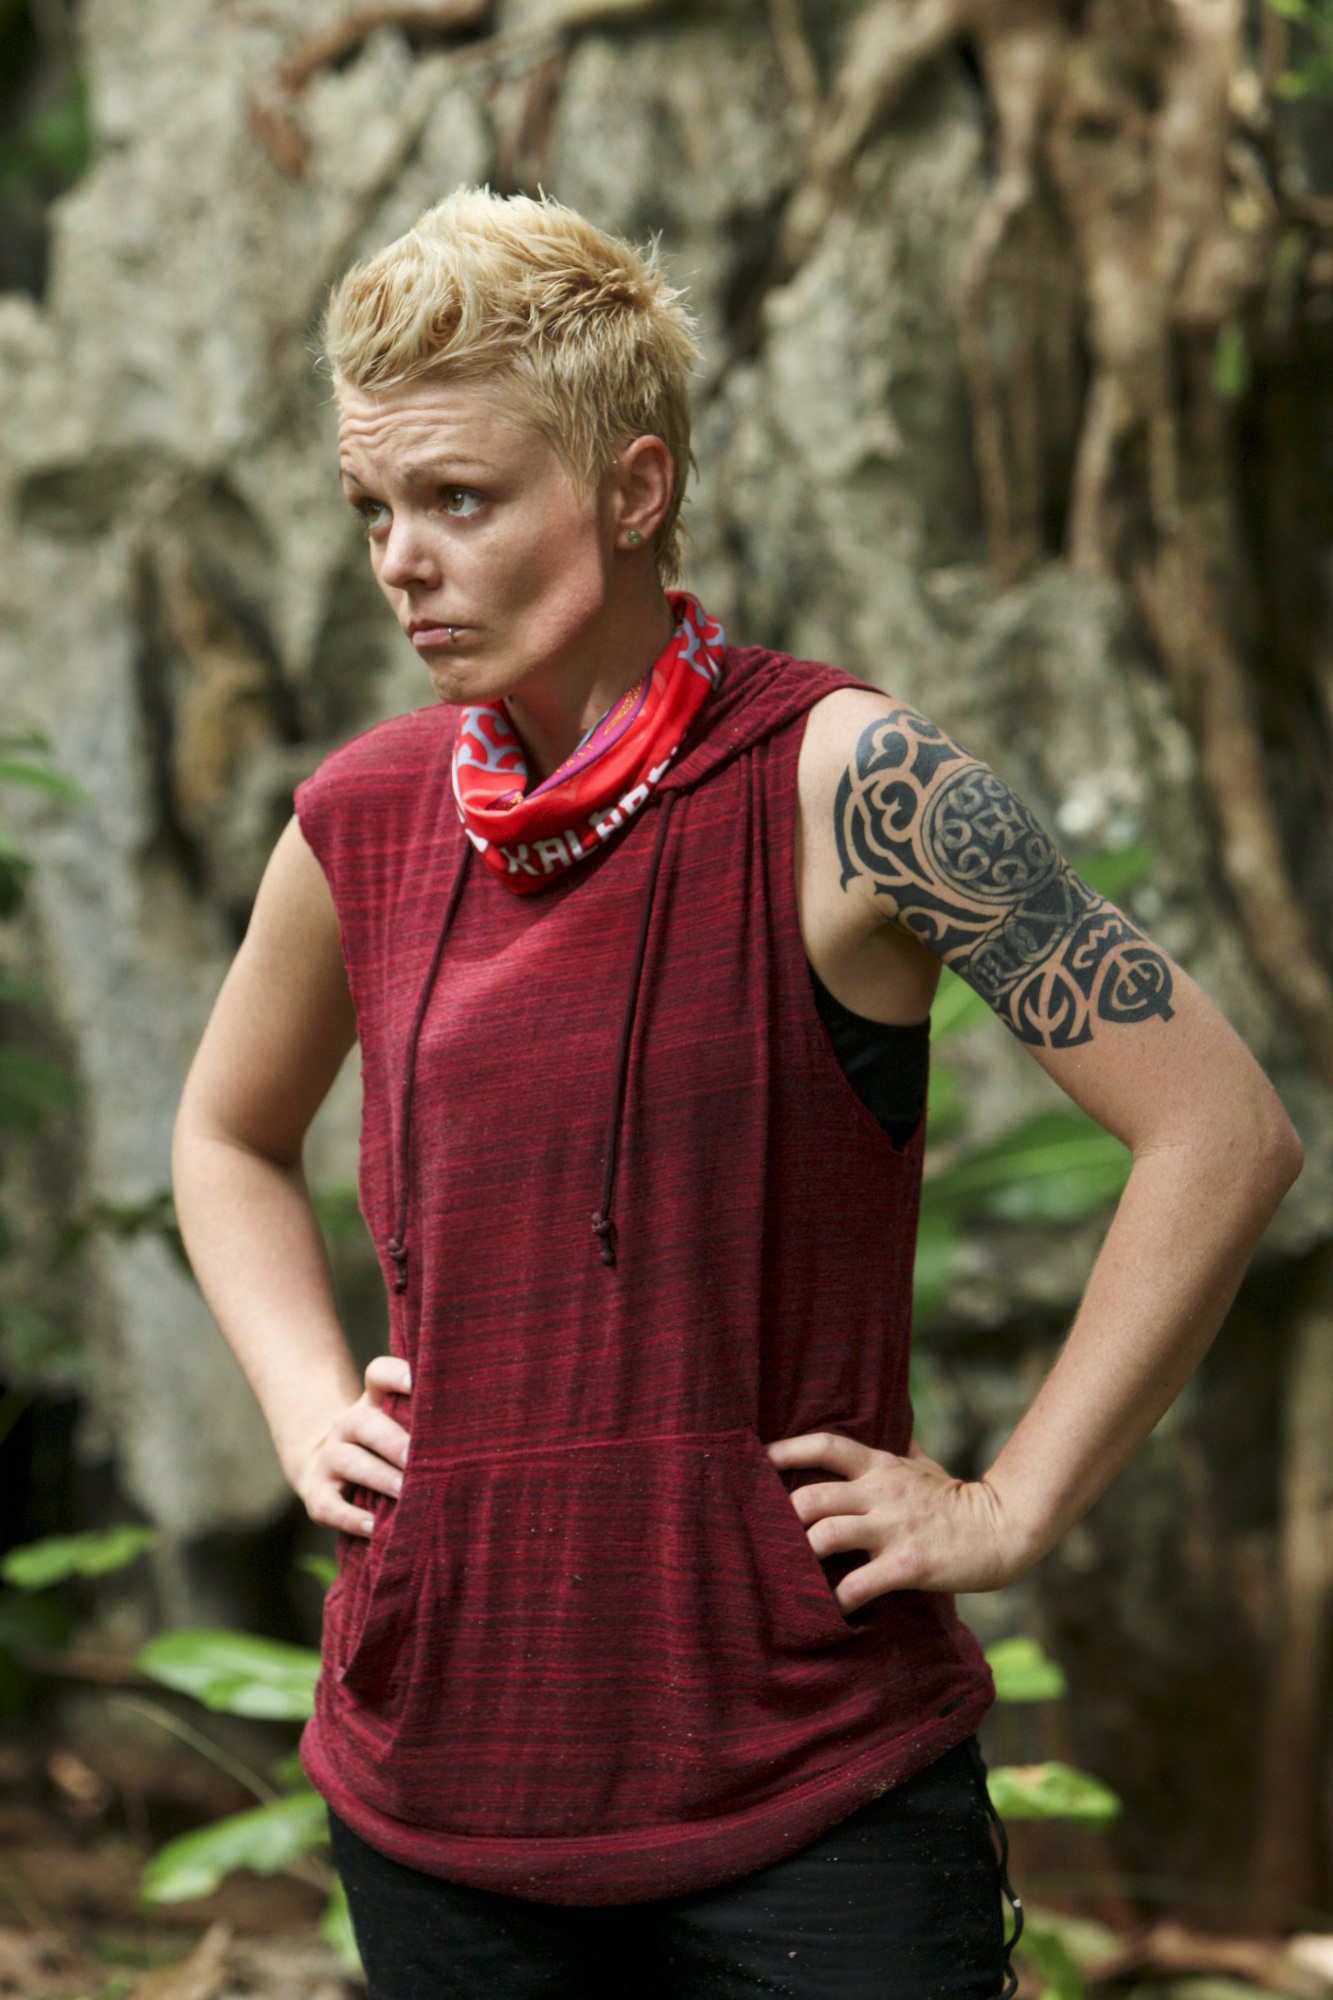 DanaThe new castaways during the premiere episode of Survivor: Philippines. The twenty-fifth installment of the Emmy Award-winning reality series premieres with a special 90-minute edition, Wednesday, September 19 (8:00 - 9:30 PM ET/PT) on the CBS Televis